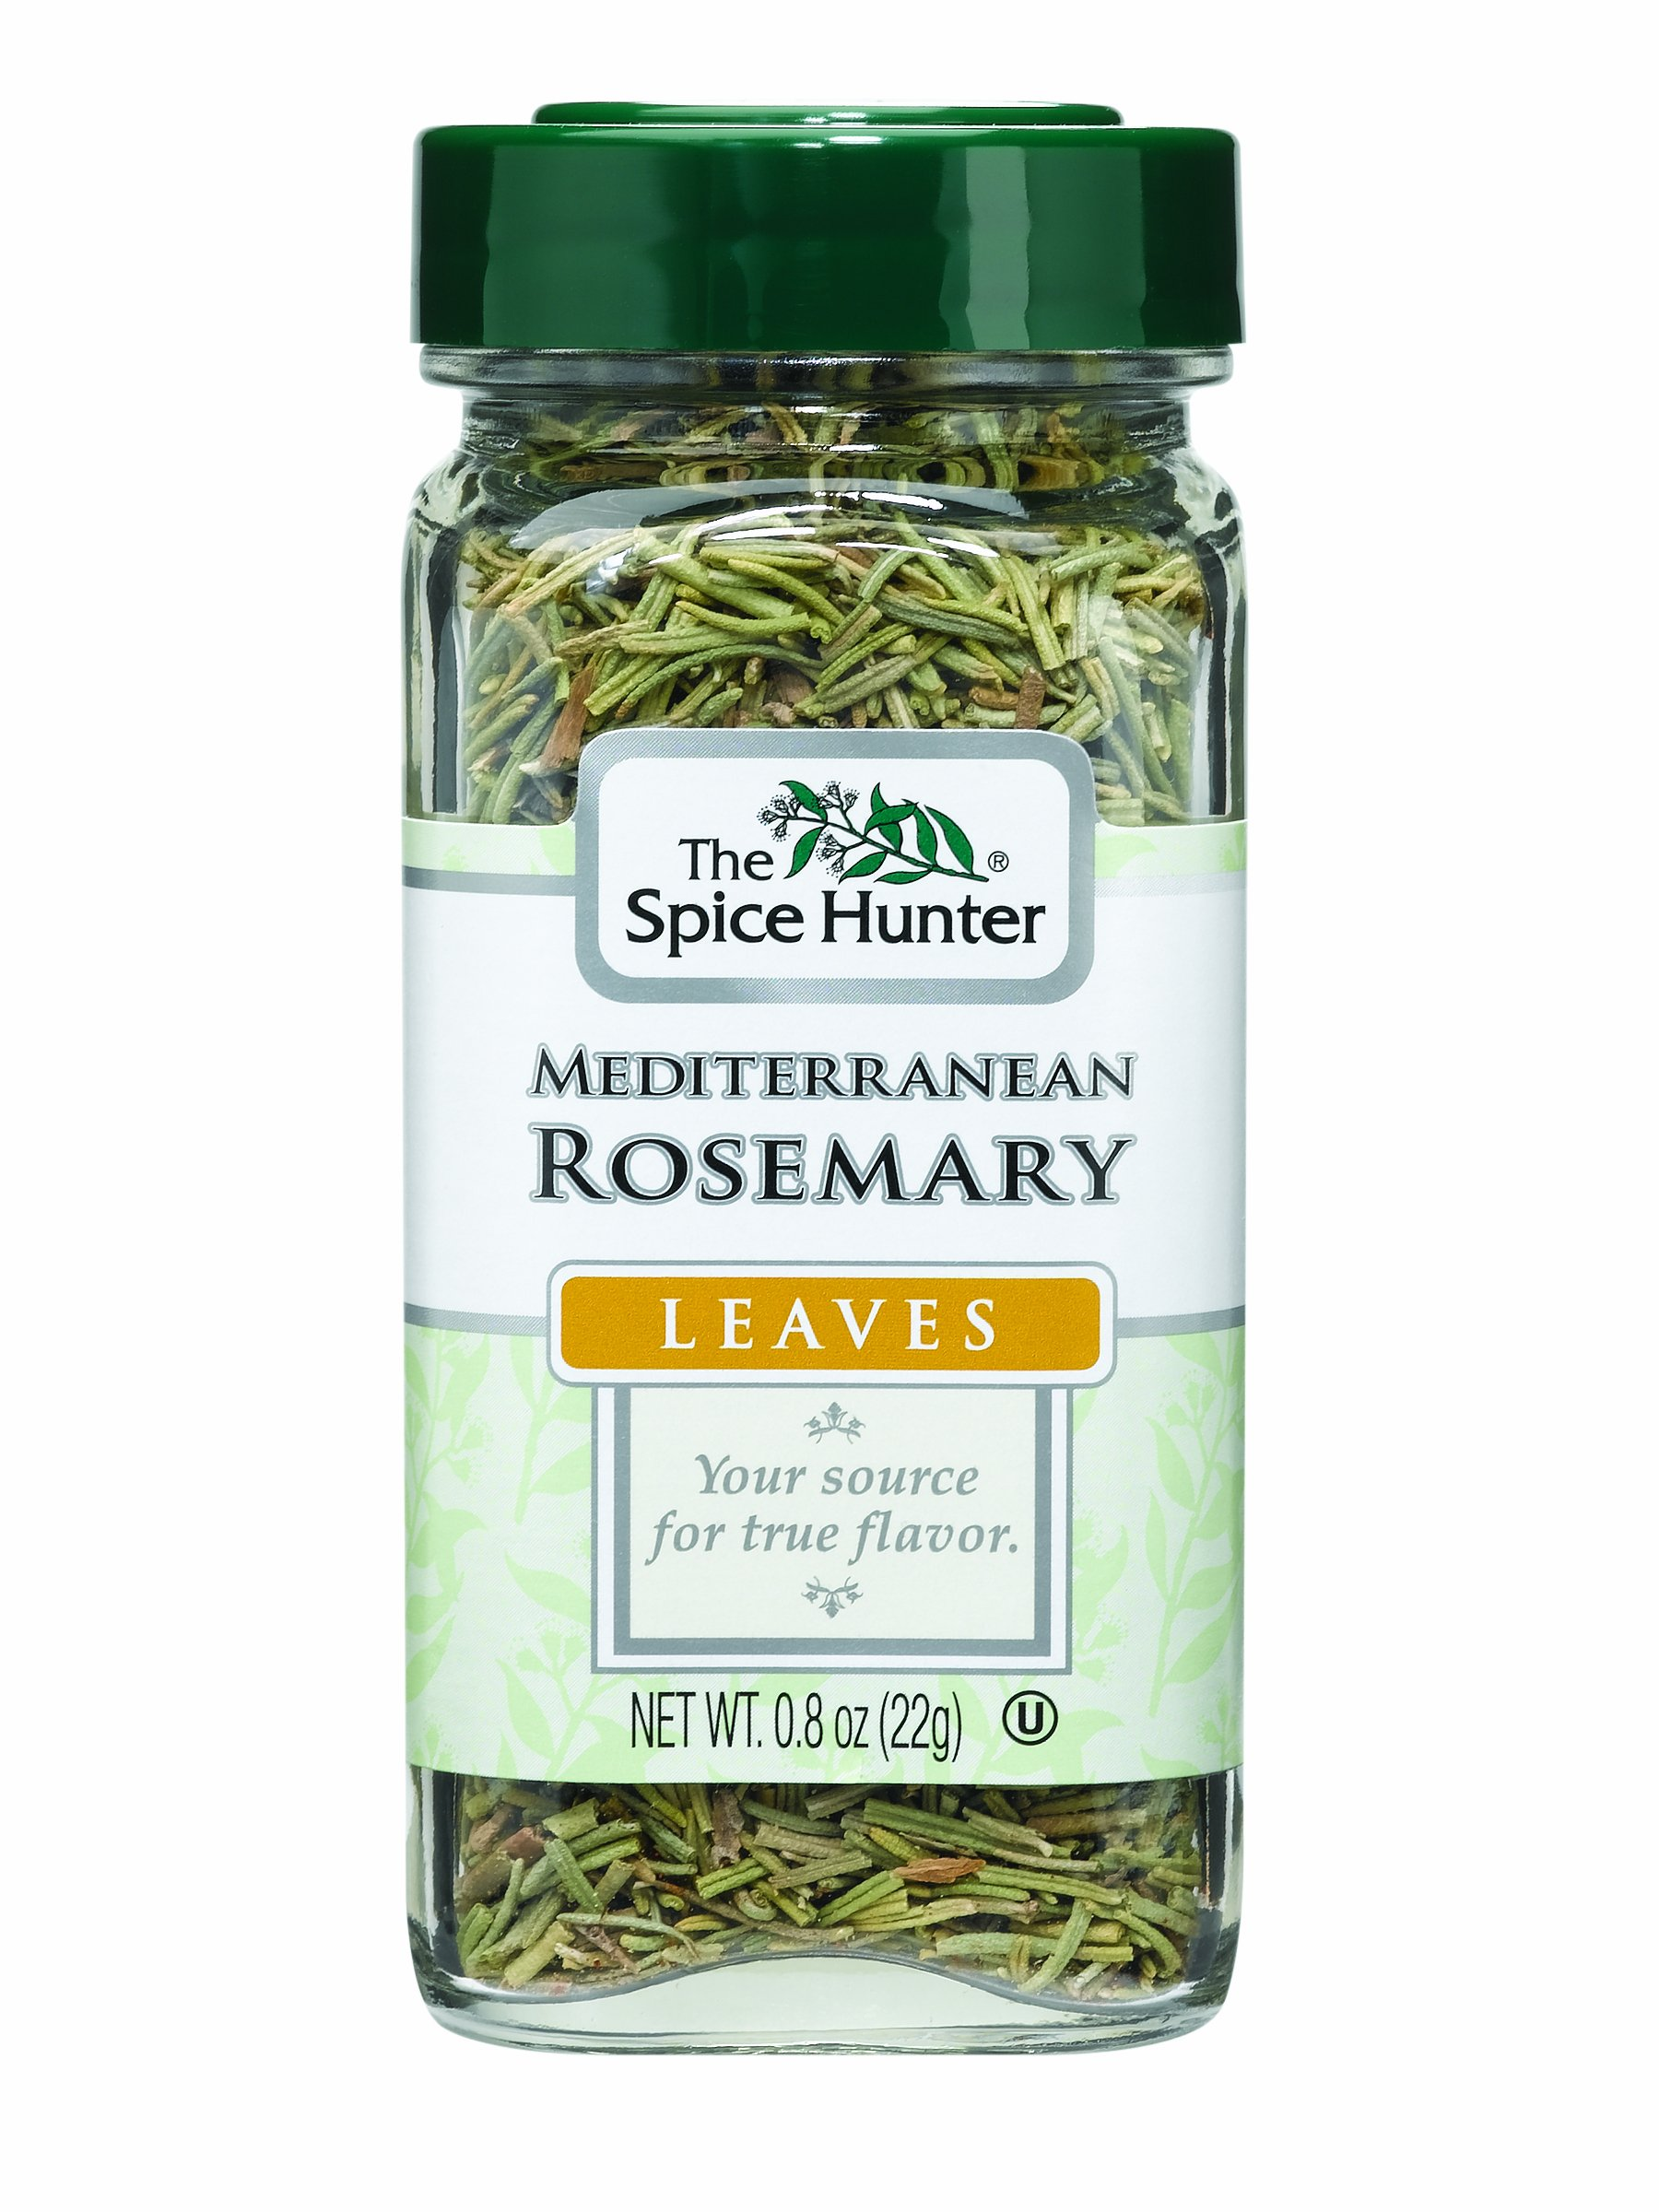 The Spice Hunter Rosemary, Mediterranean, Leaves, 0.8-Ounce Jar